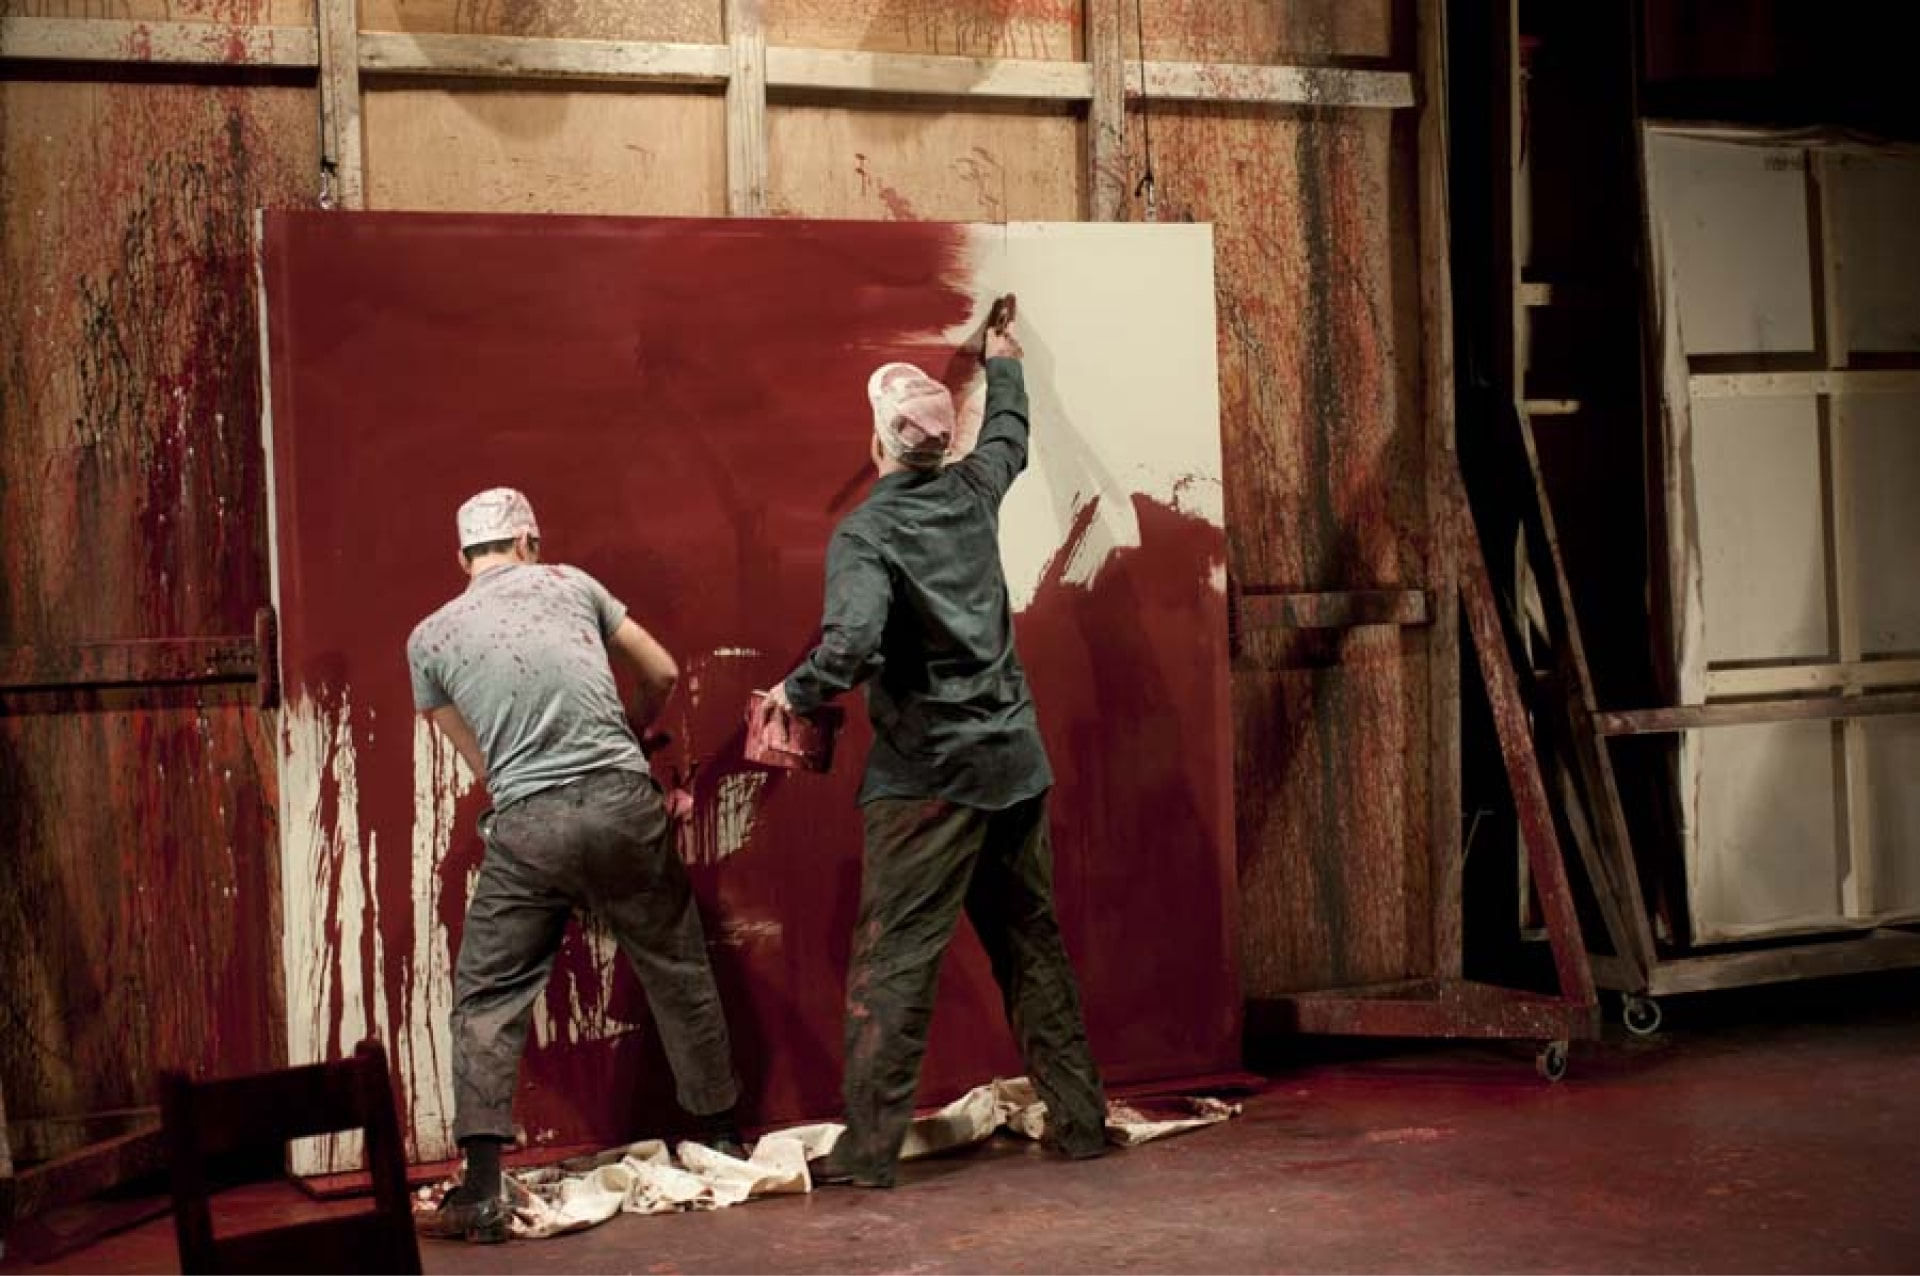 Two men smear red paint on white canvas leaning against wooden wall.